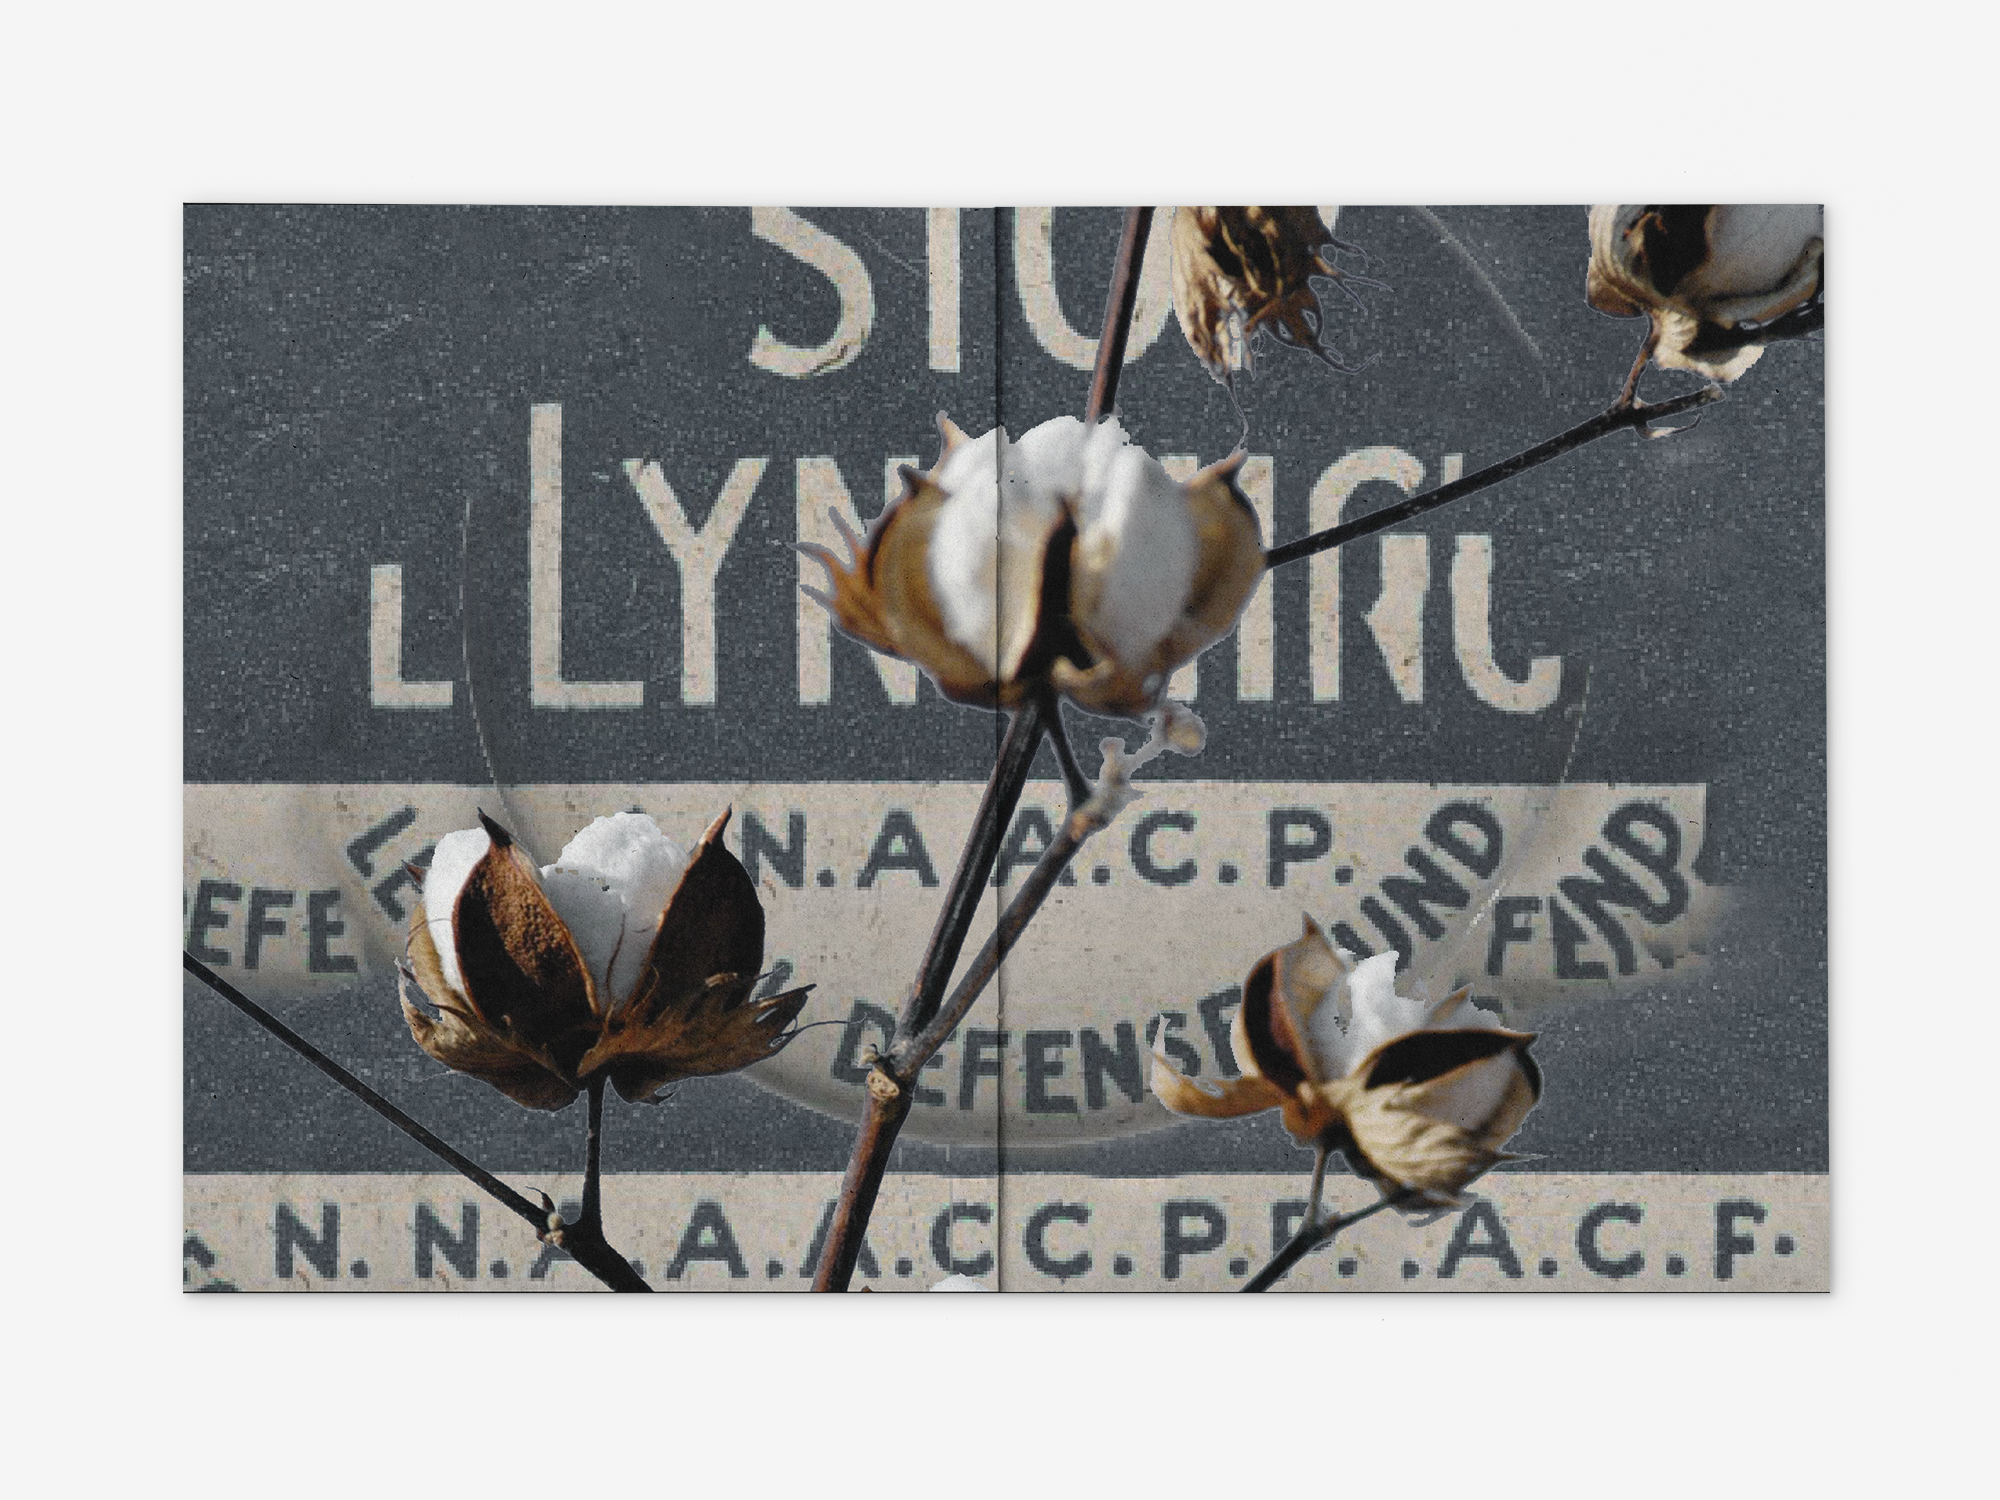 Collage using imagery of a stop lynching button from the NAACP LDF and cotton plant.